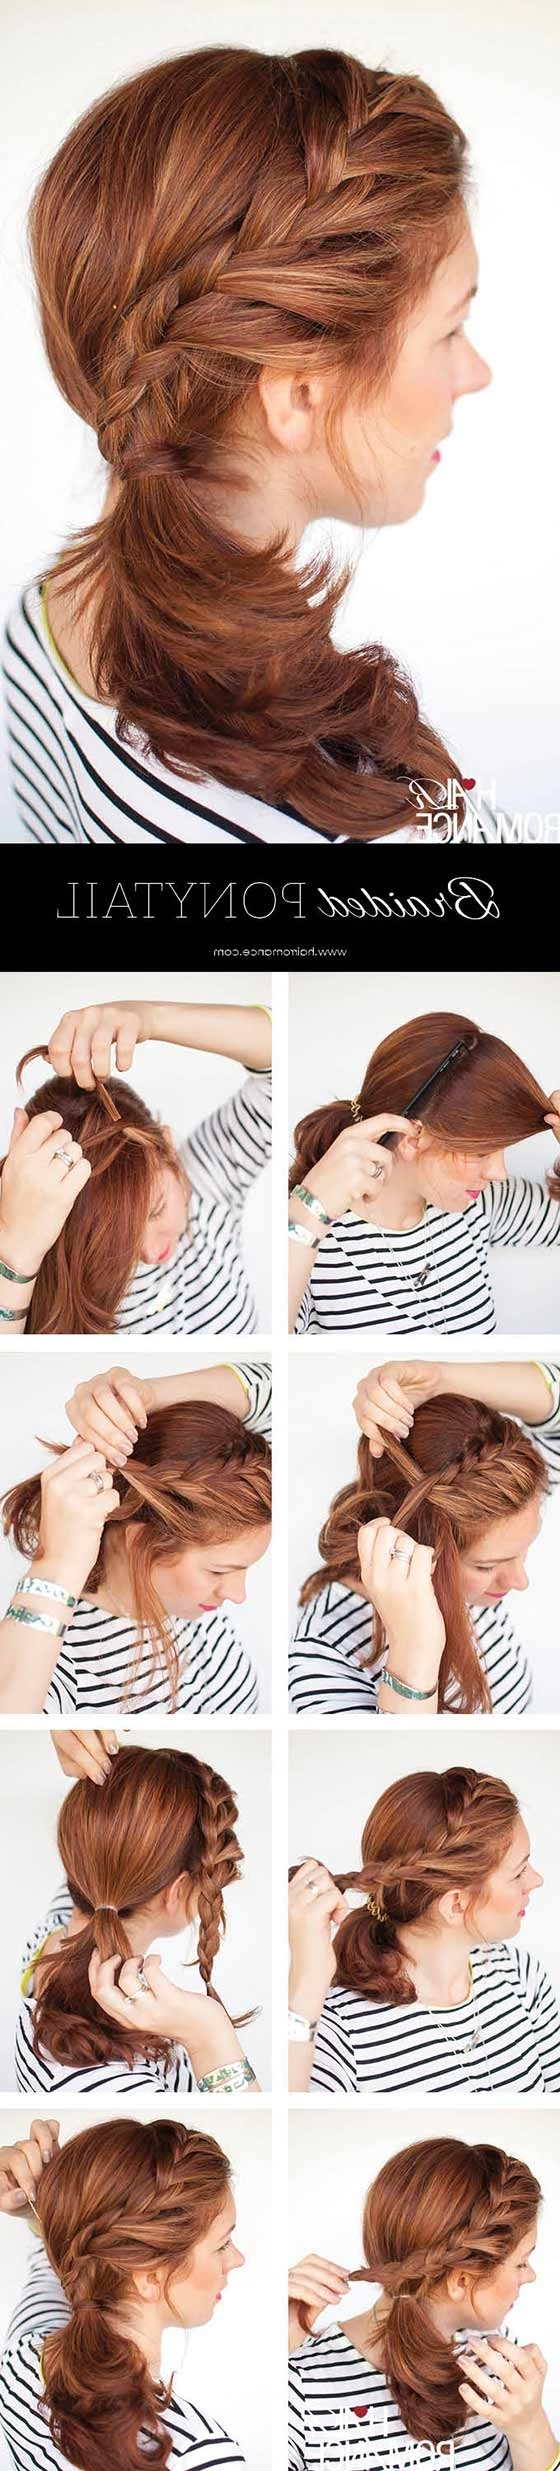 Most Recent Long Pony Hairstyles With A Side Braid Inside 40 Braided Hairstyles For Long Hair (View 11 of 20)